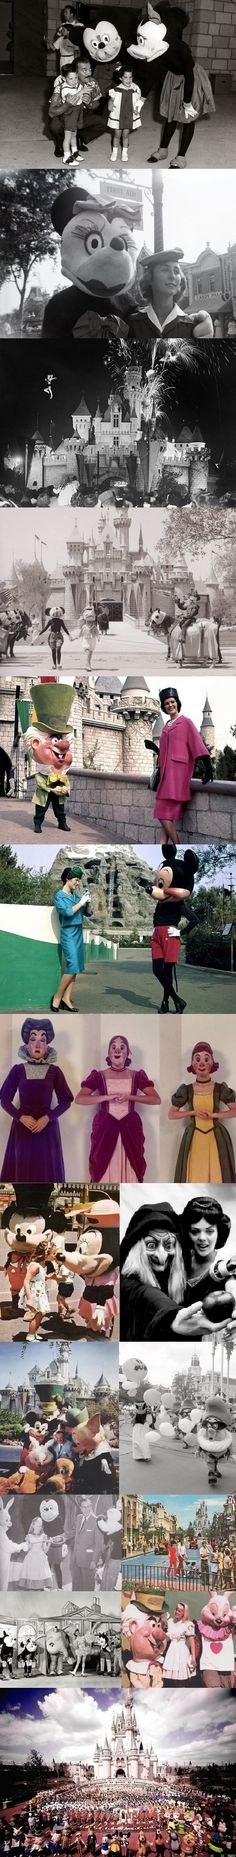 Old photos from Disneyland  - funny pictures #funnypictures